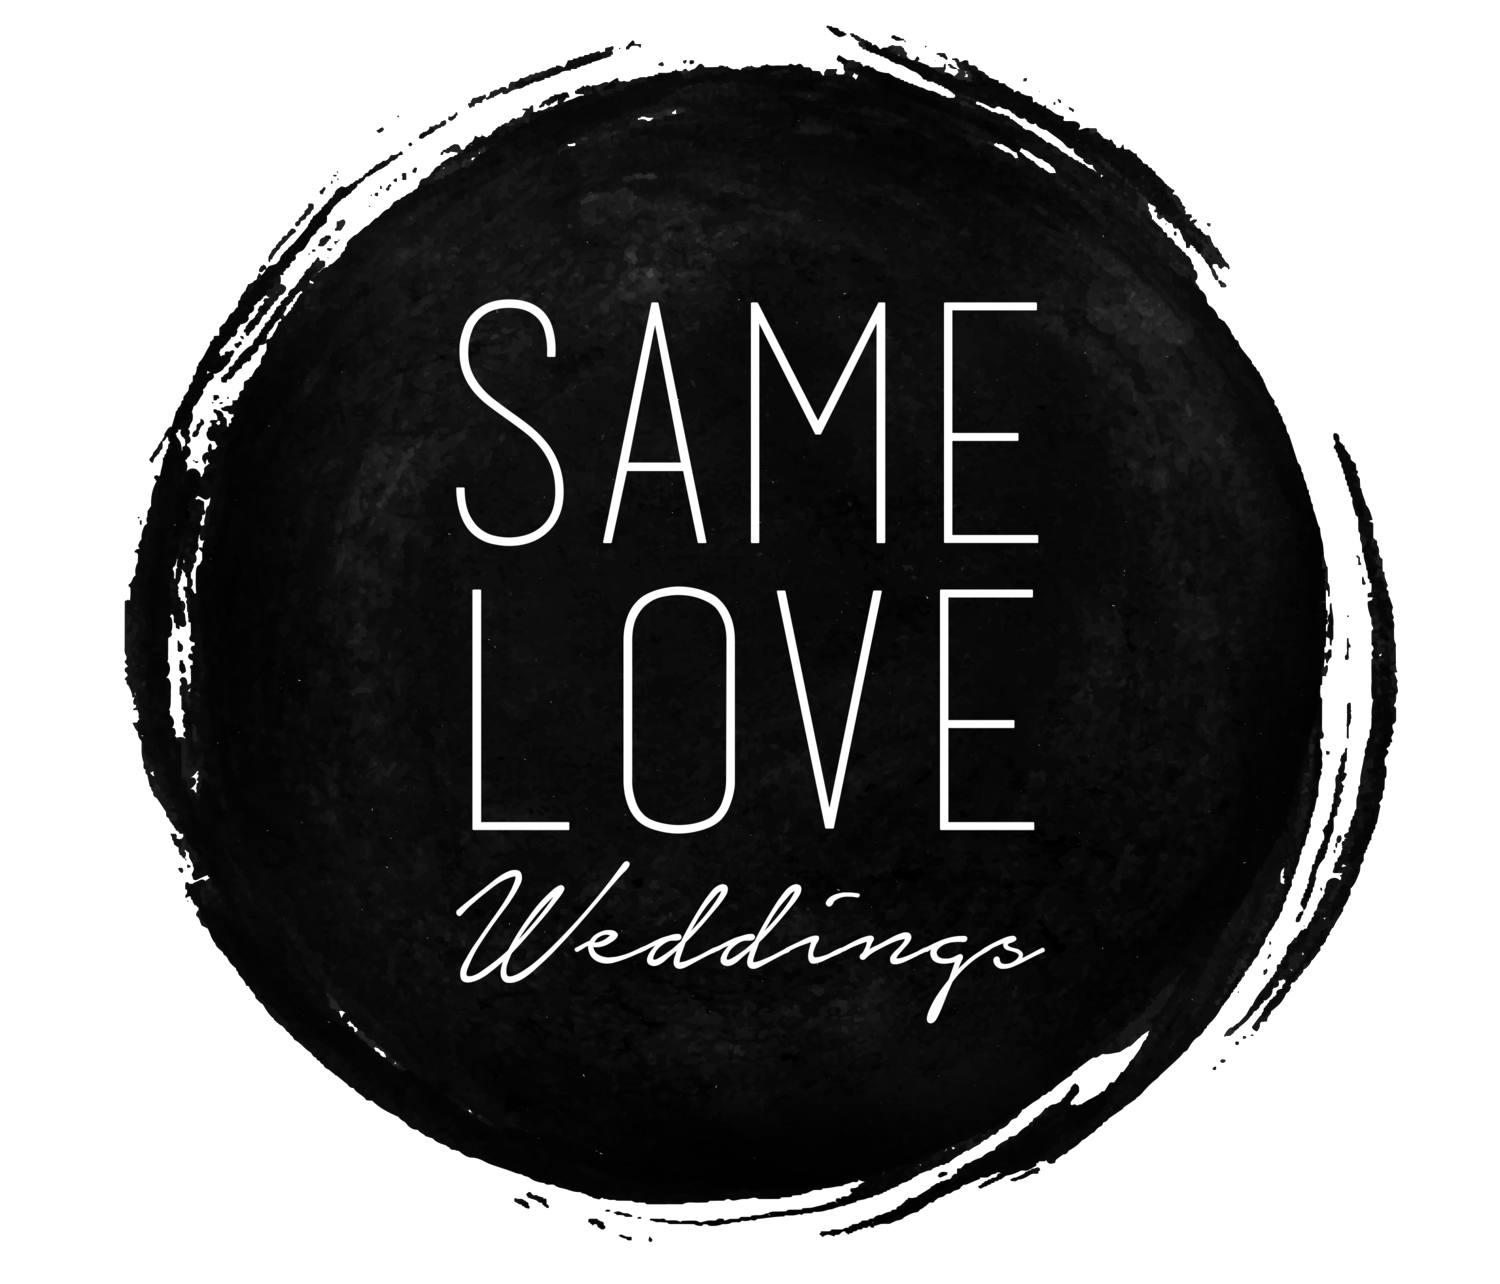 SAME LOVE WEDDINGS